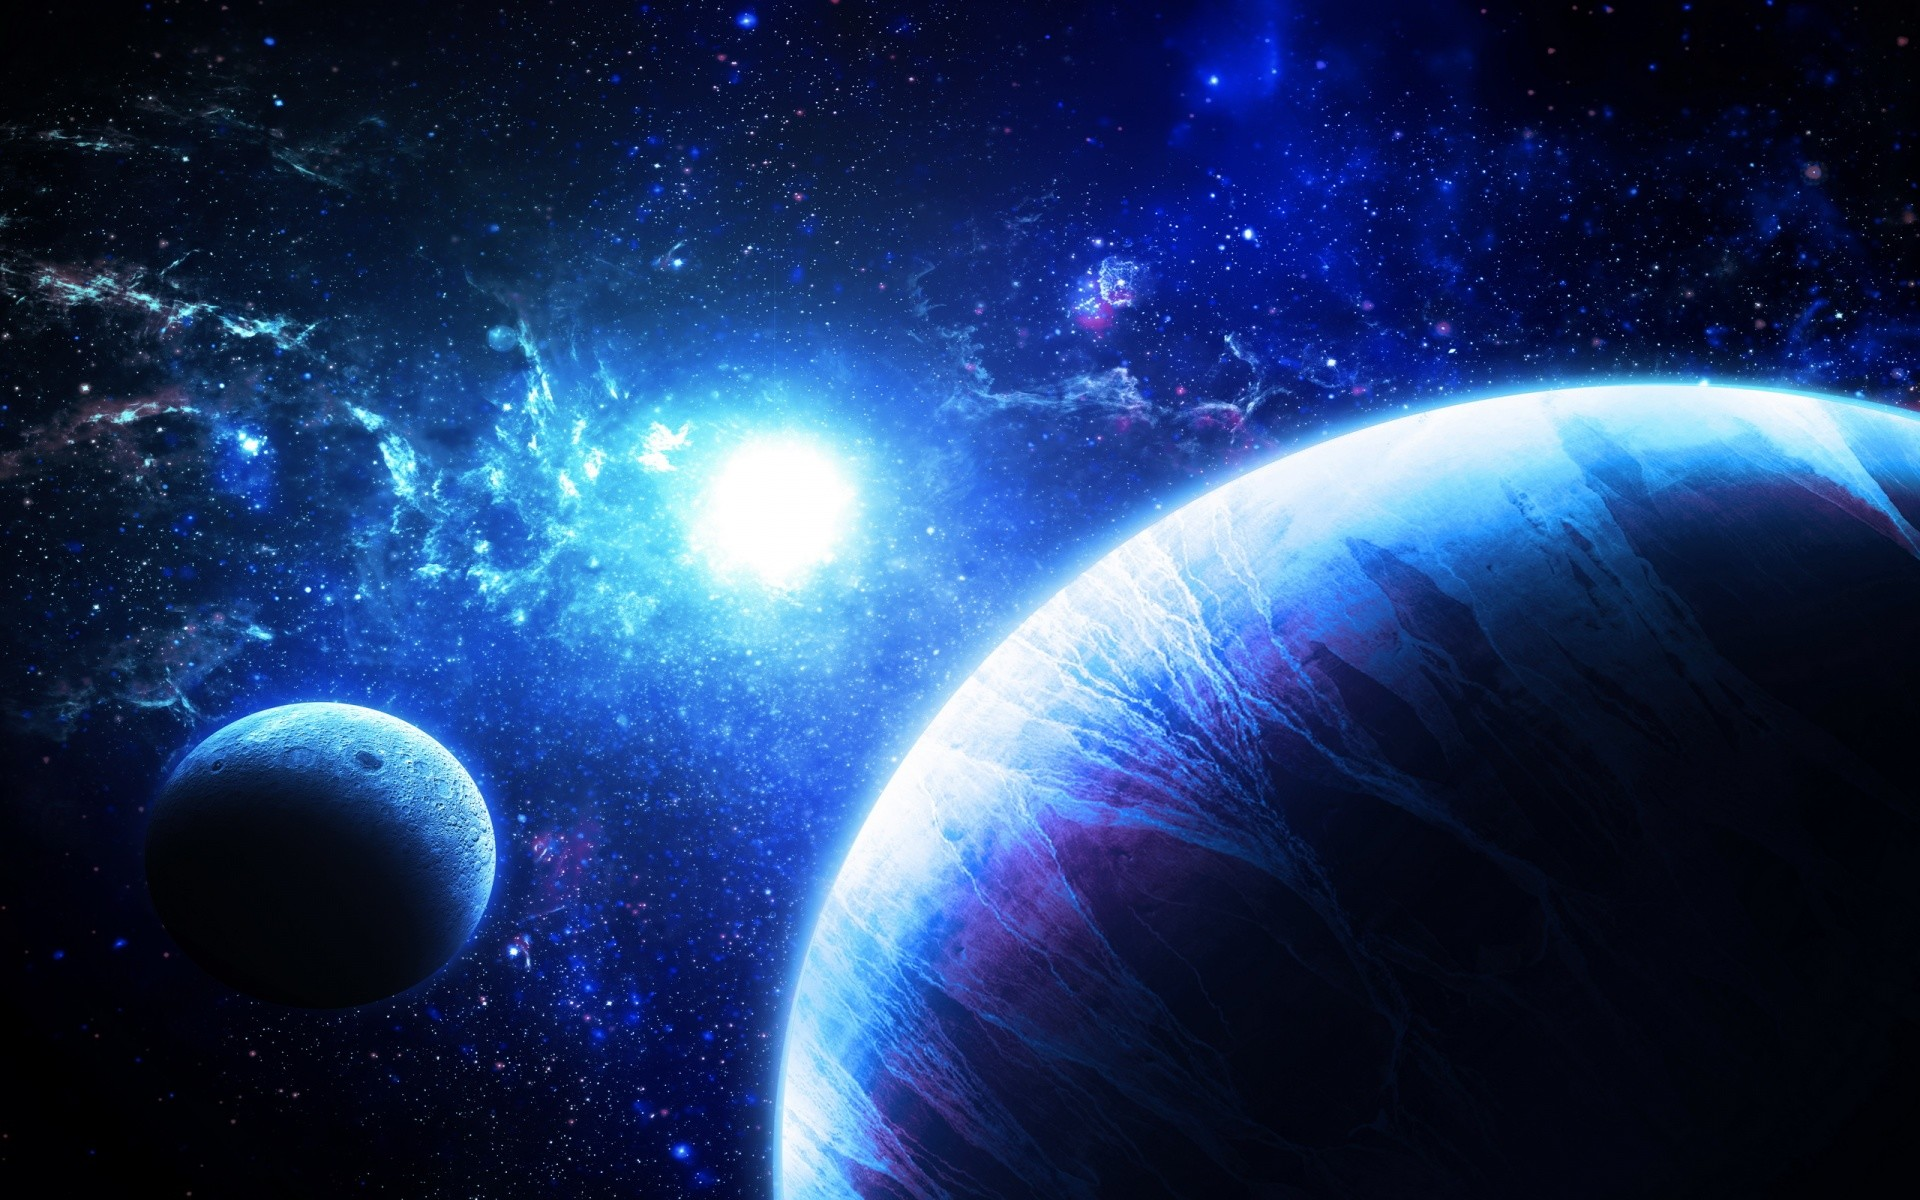 Space desktop background 69 images - Space wallpaper 1920x1200 ...